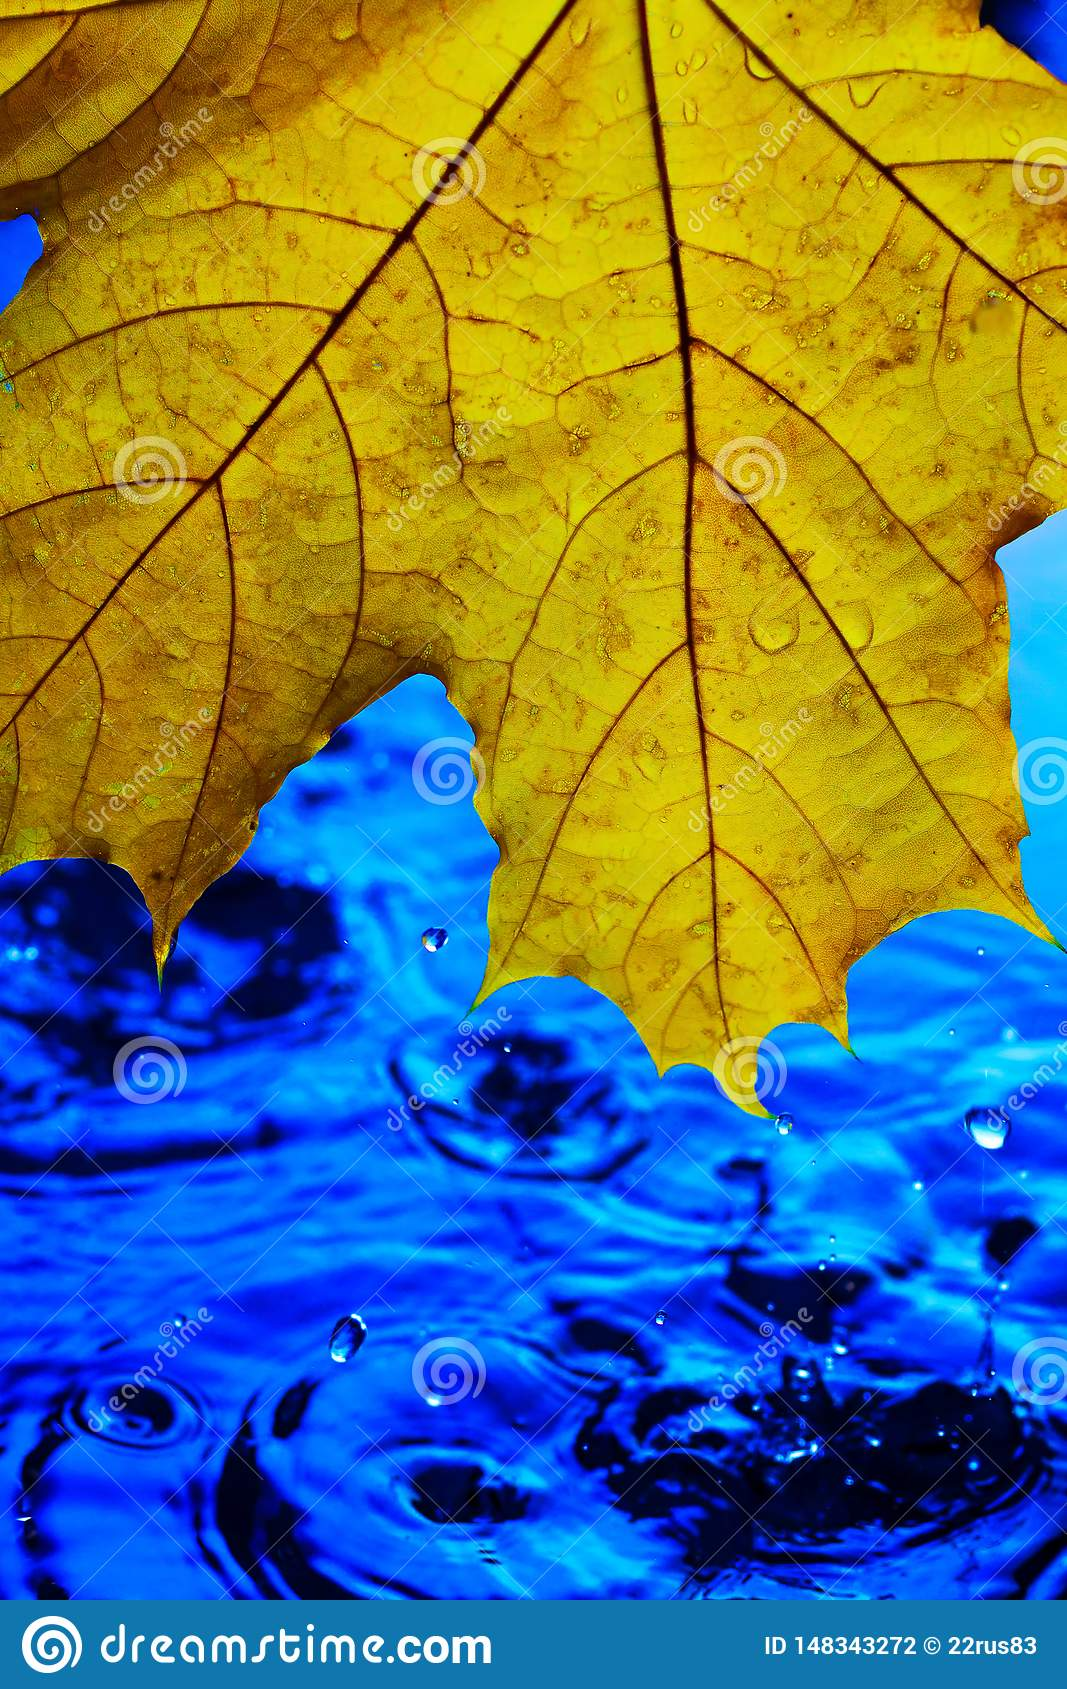 Background Wallpaper For Screen Savers Yellow Autumn Leaf Over Blue Water During Rain Splashes And Drops Of Water With Blue Stock Photo Image Of Natural Moisture 148343272